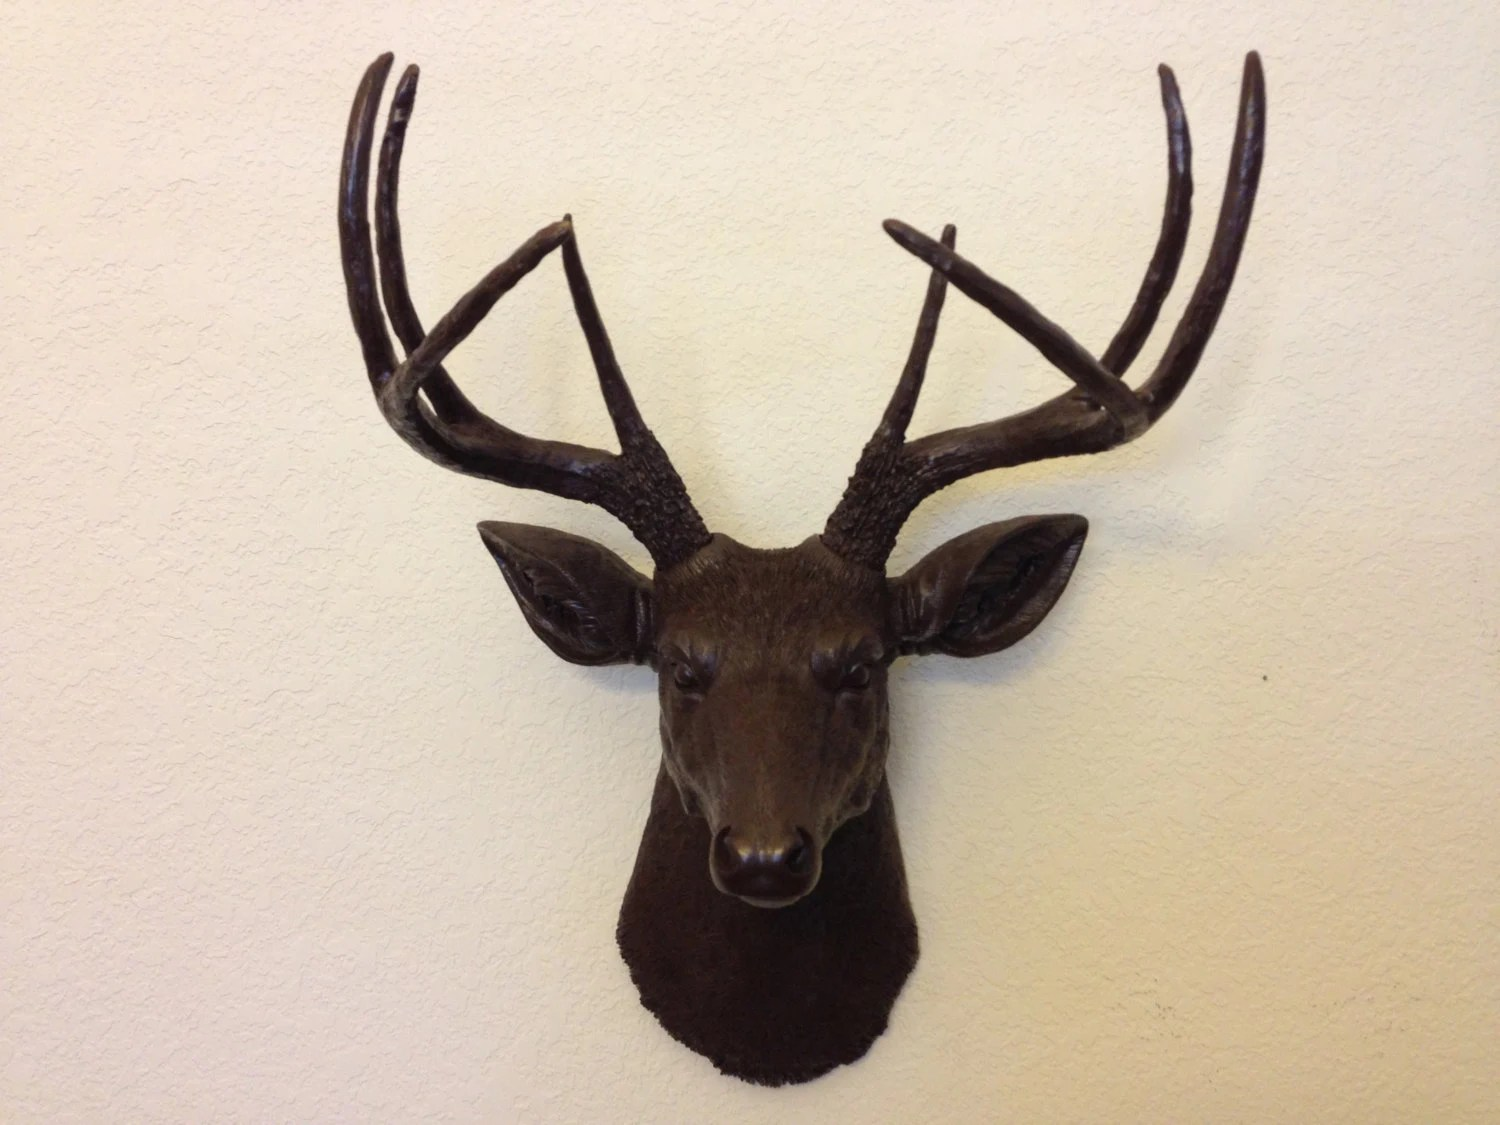 Faux Stag Head Faux Deer Head Hunting Trophy With Antlers Brown By